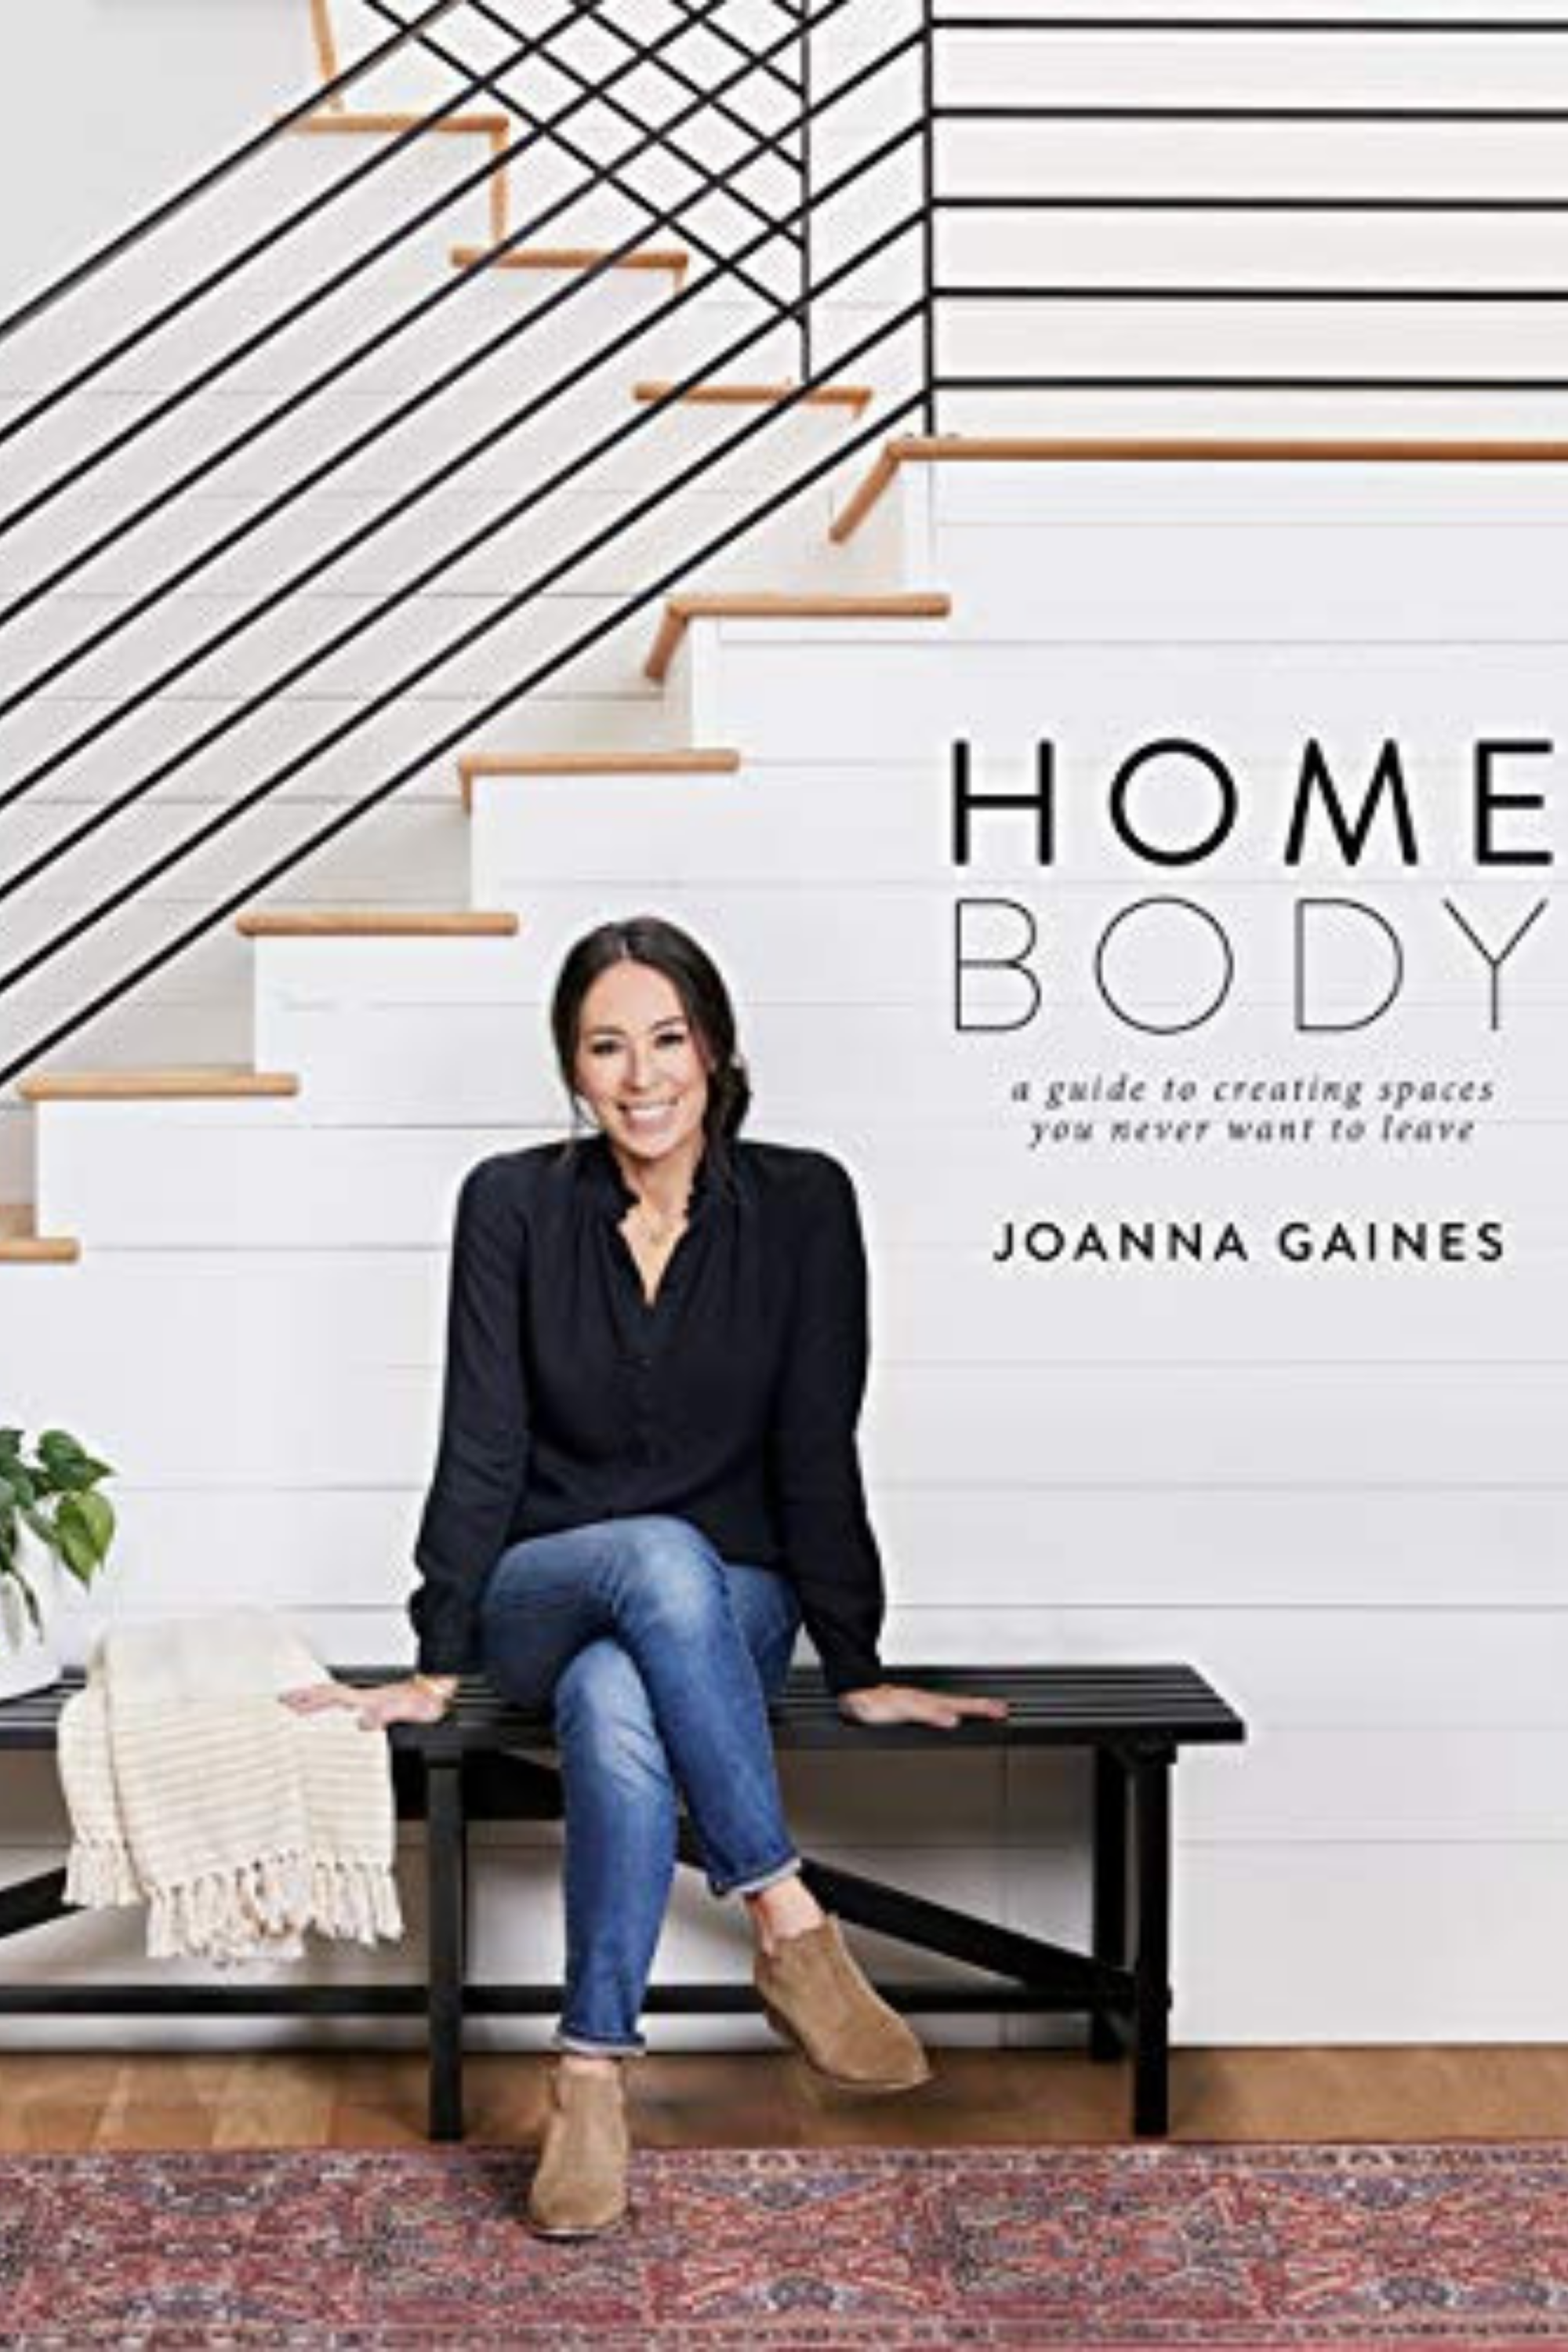 Home Body Joanna Gaines Courtney Elmer.png